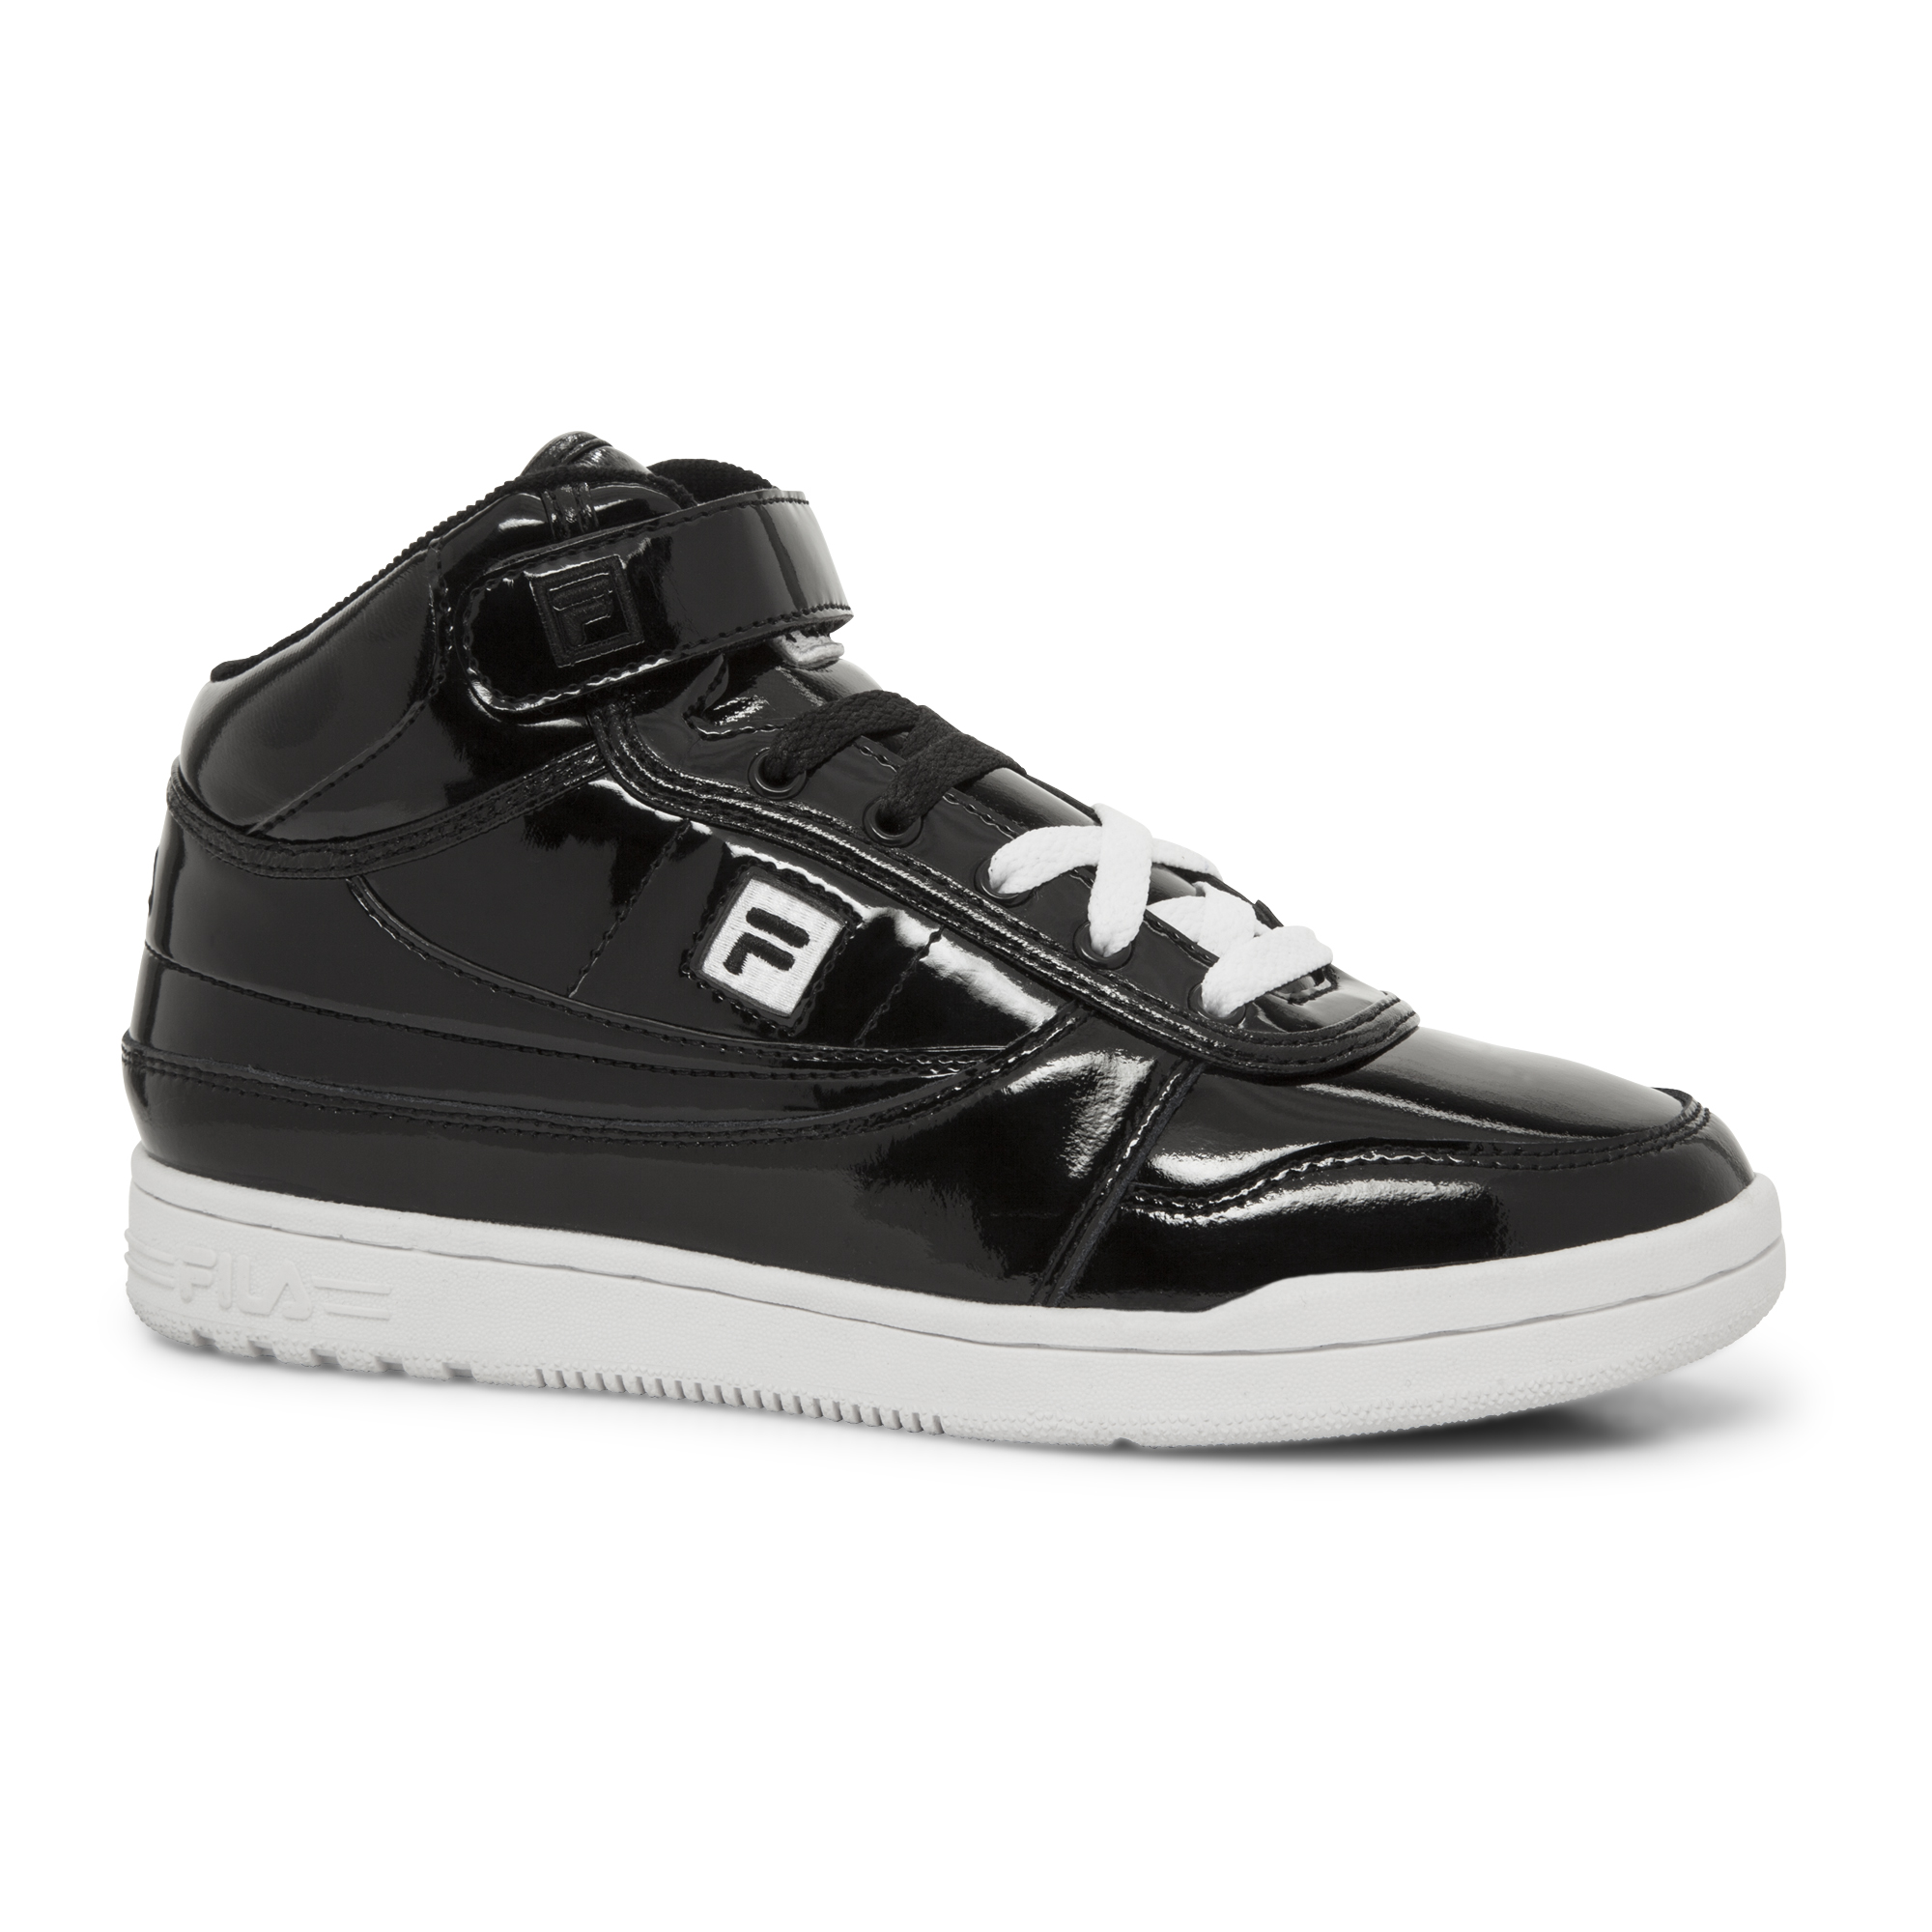 fila for women. fila-women-039-s-bbn-84-casual-shoe fila for women w